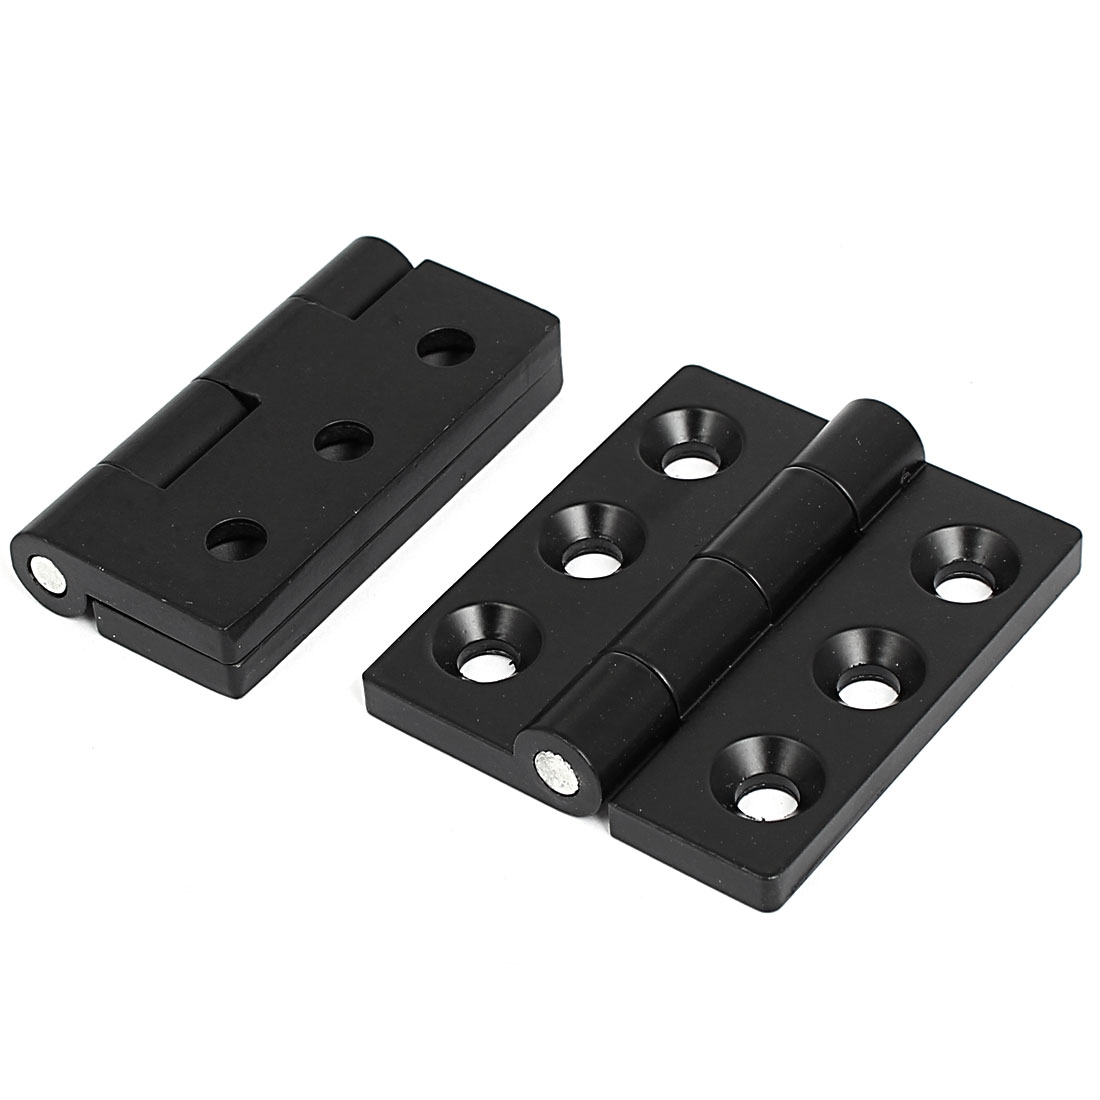 Zinc Alloy 180 Degree Rotatable Cabinet Cupboard Closet Door Hinge 2pcs